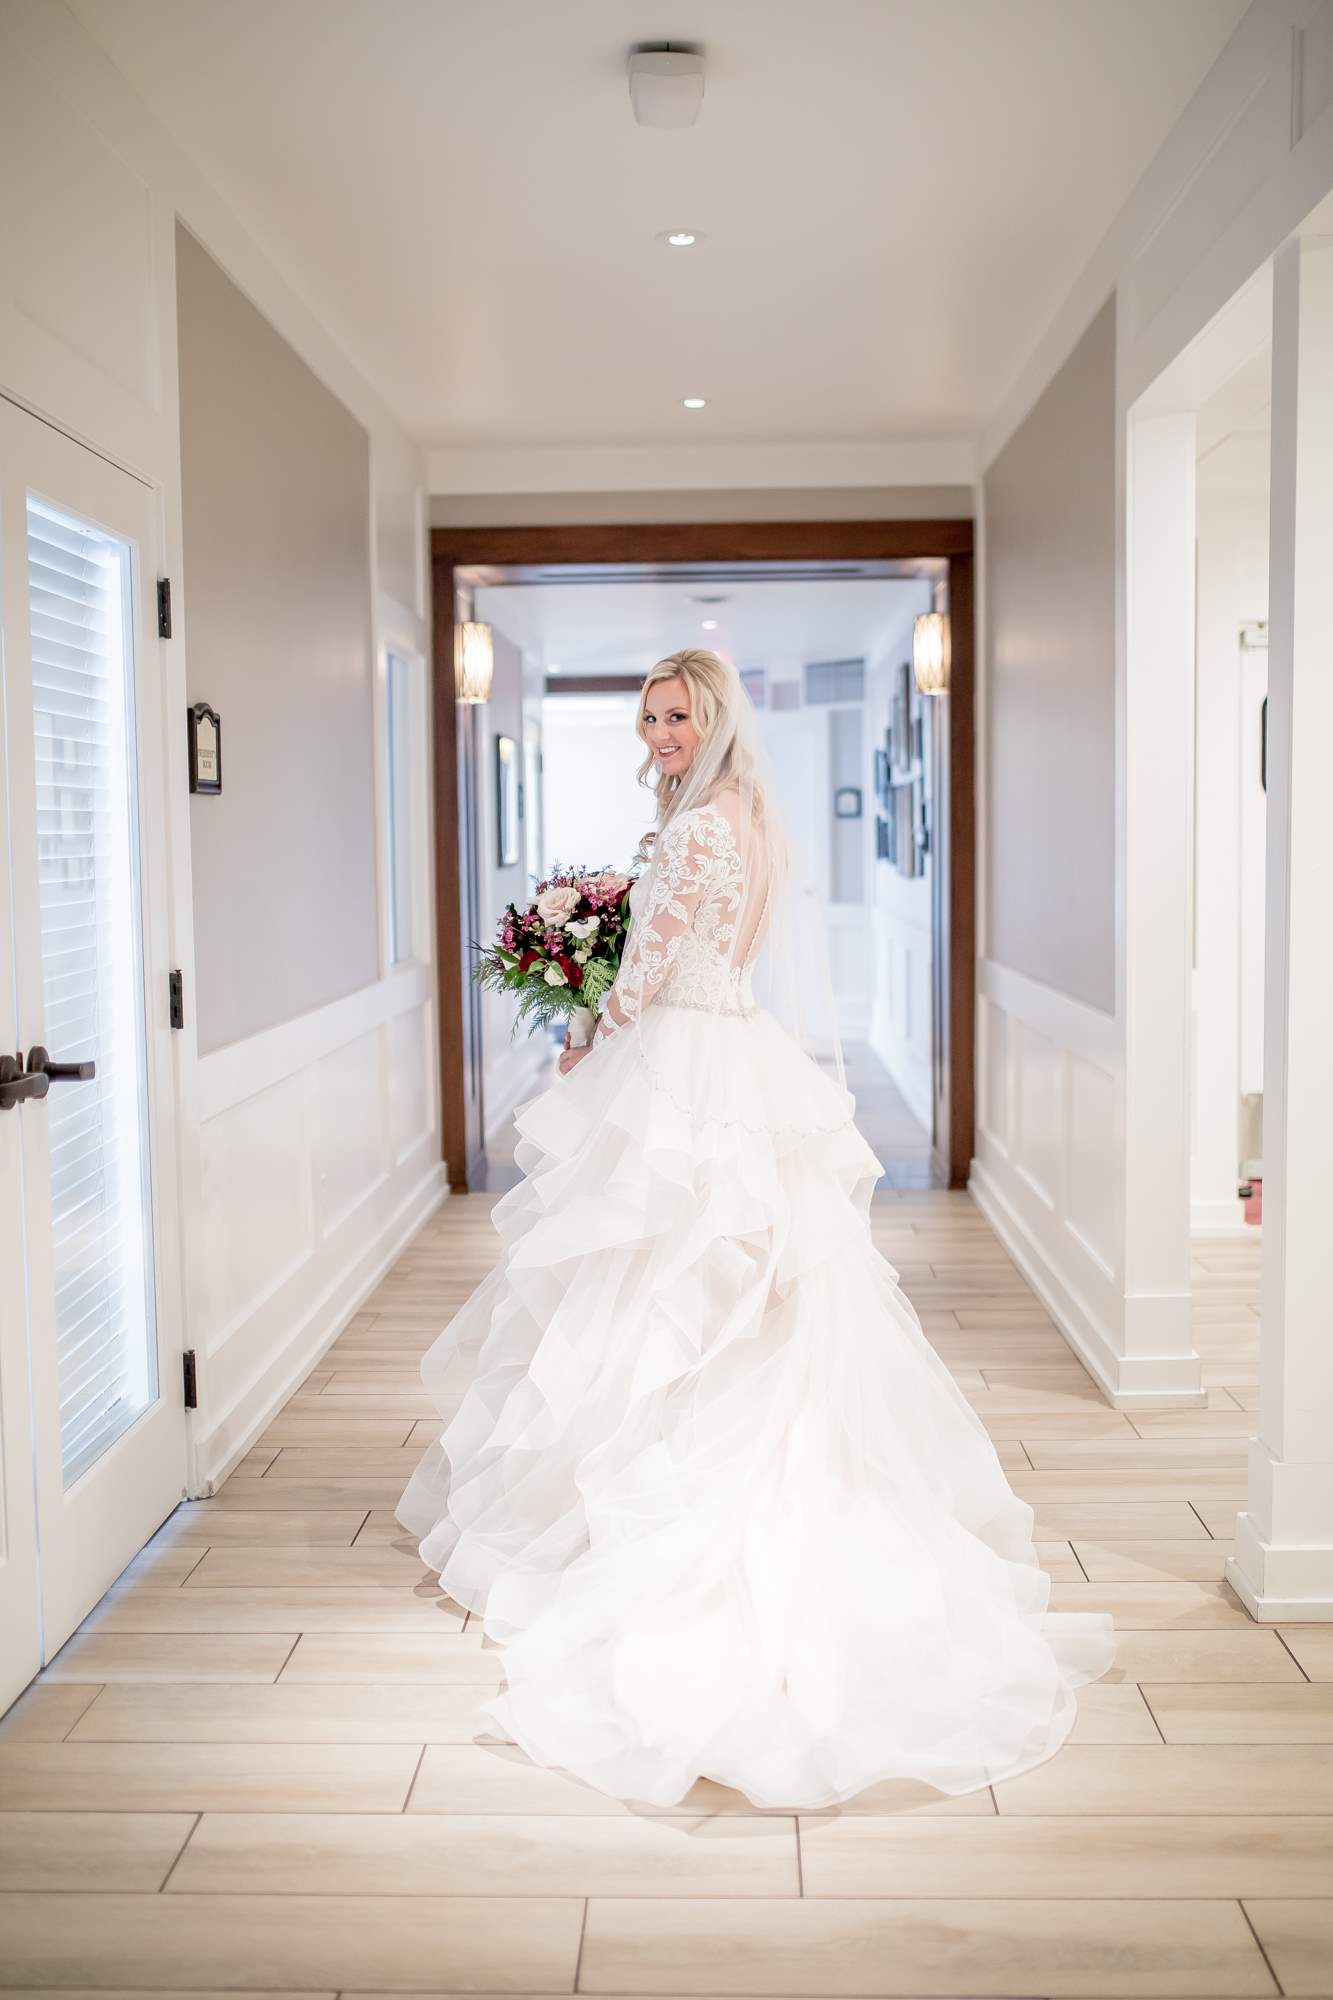 Rockford Michigan Wedding, Winter Wedding, Christina Leskovar Photography-34